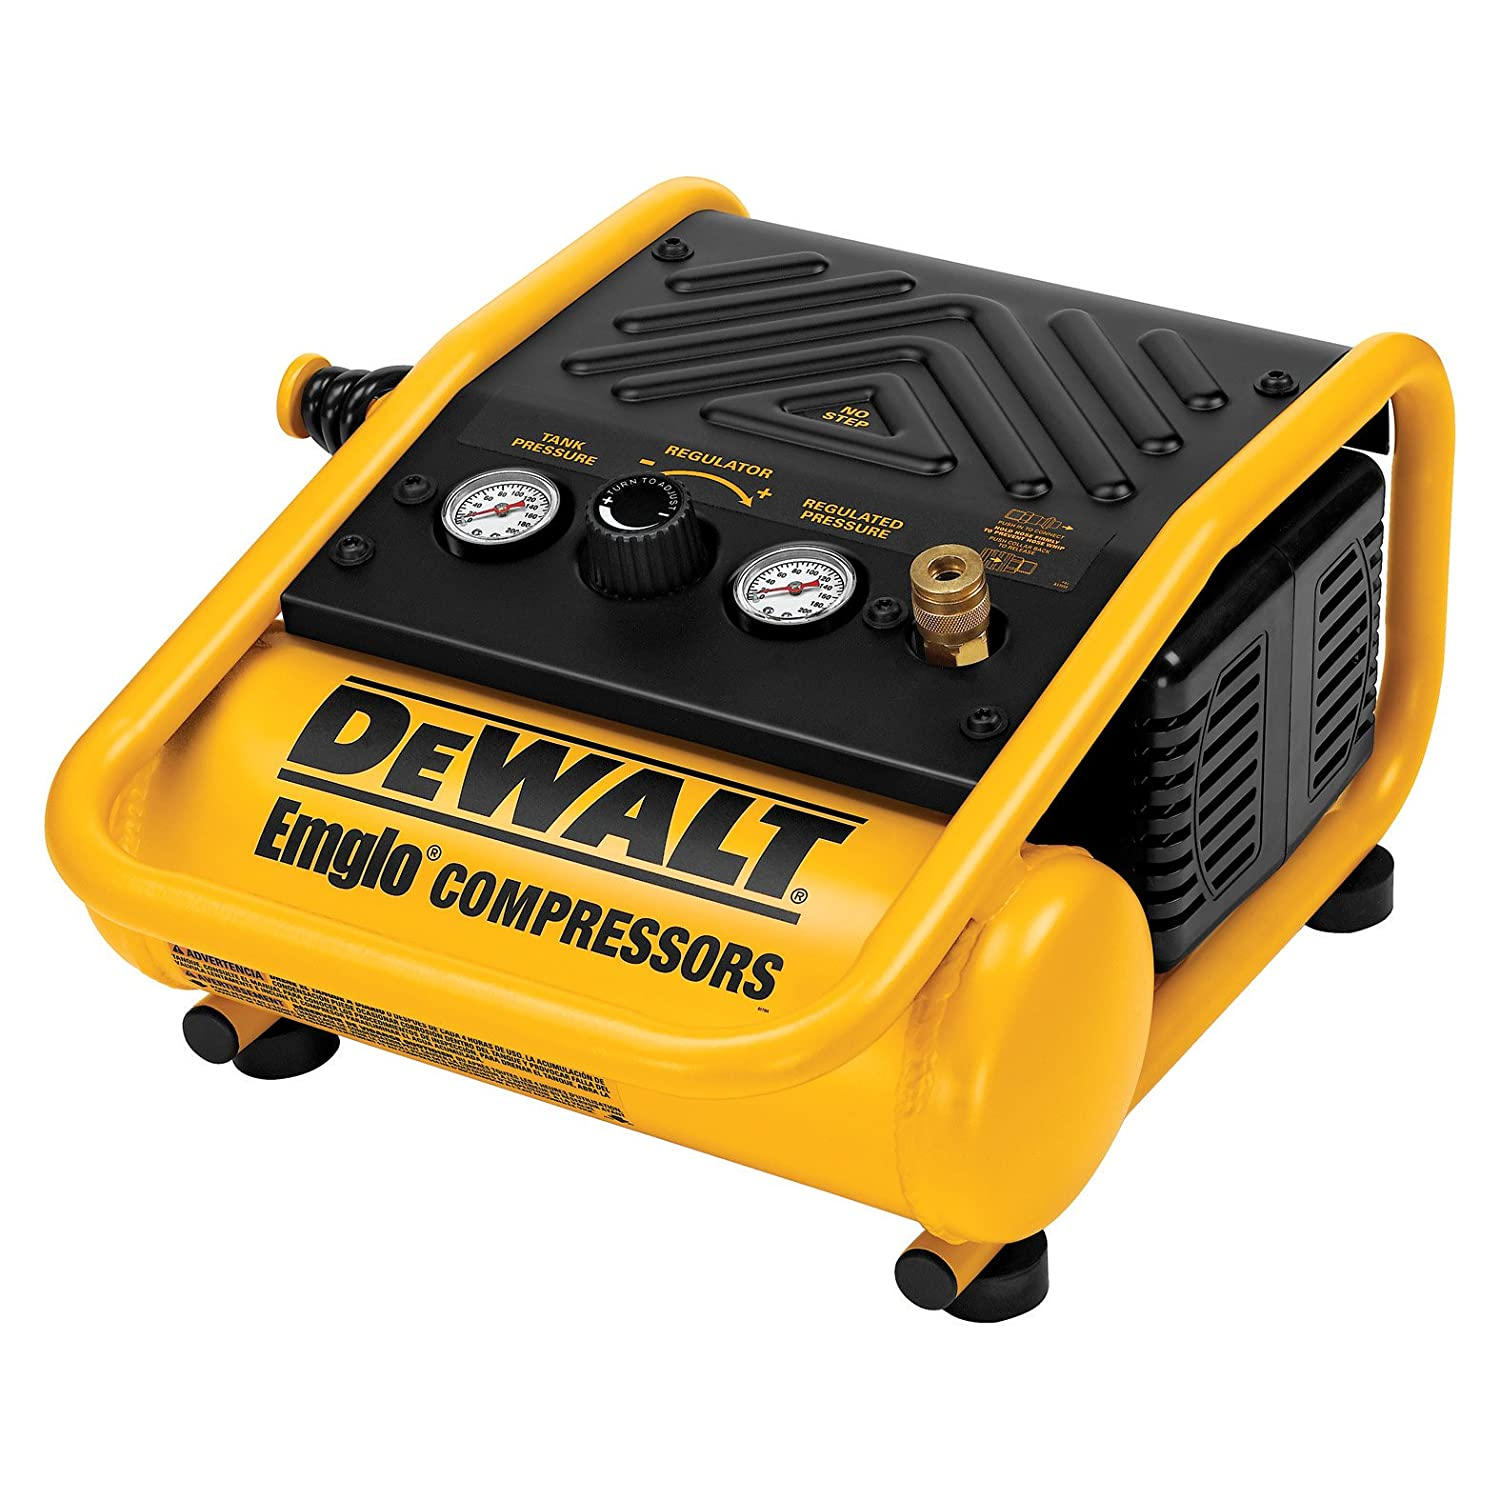 3.  DeWalt D55140 One-GallonTrim Compressor